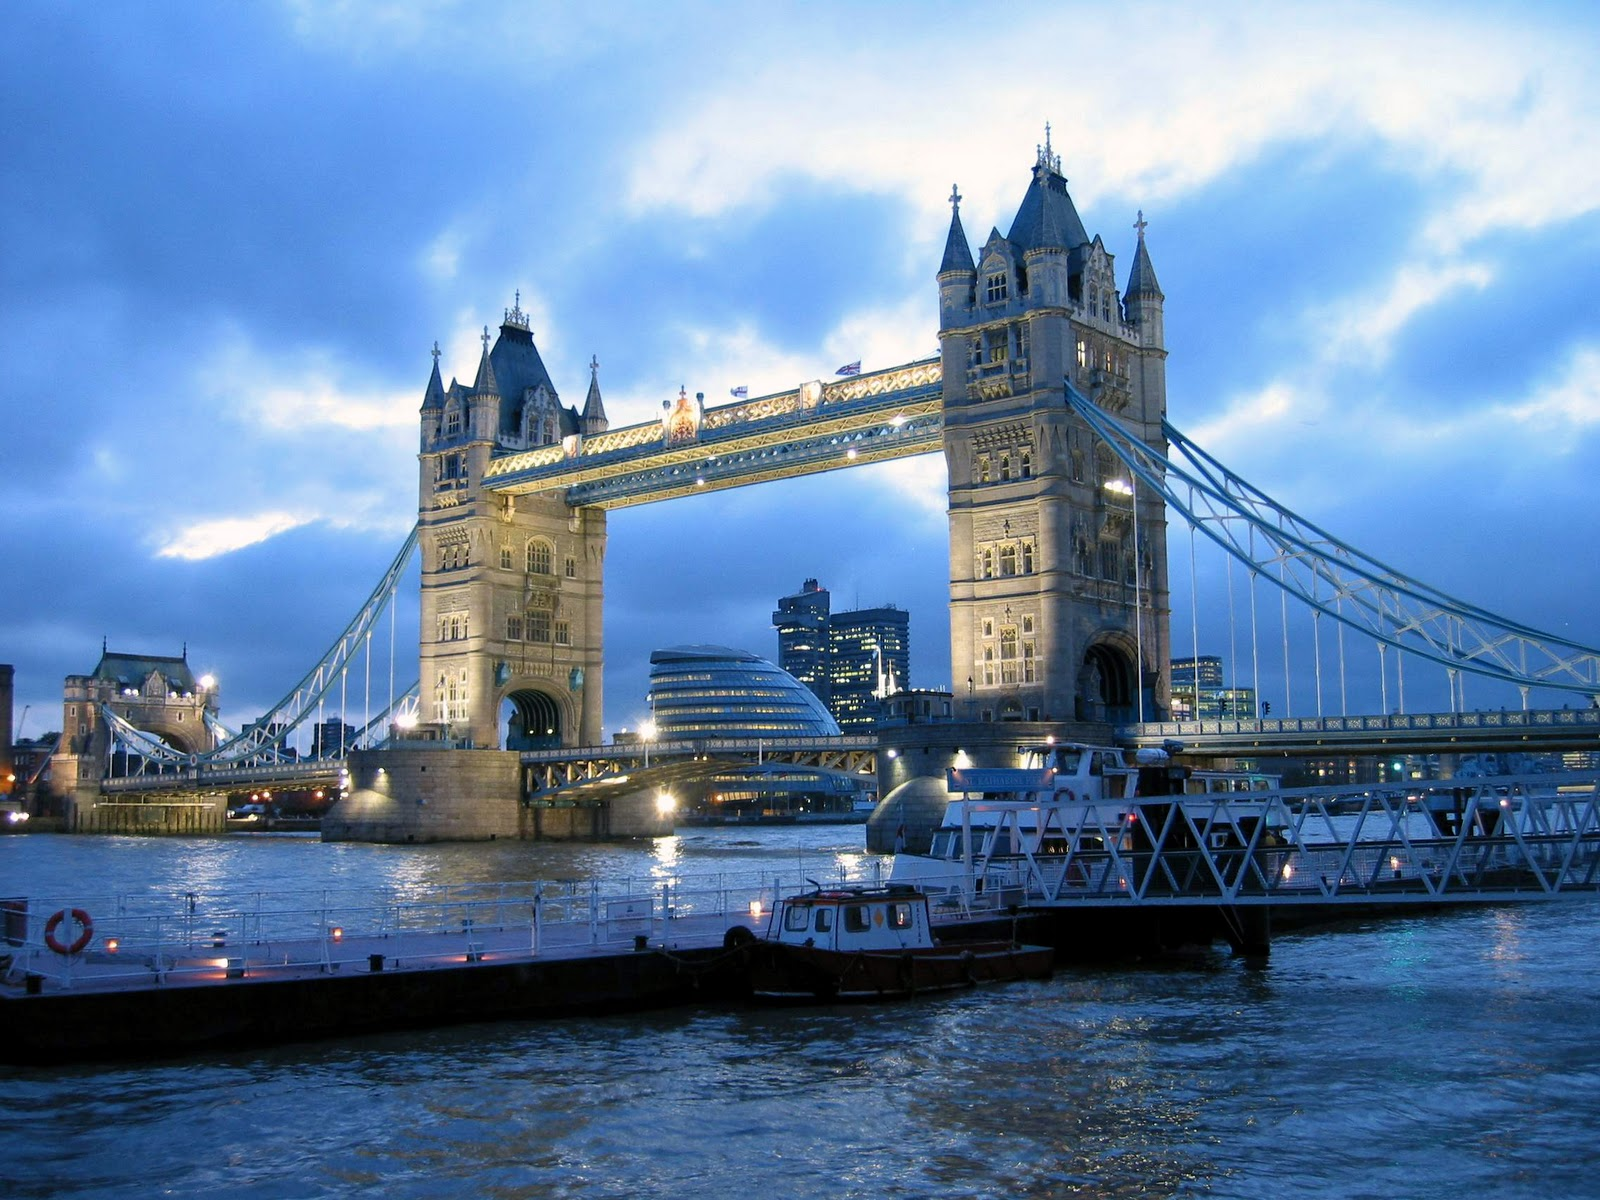 http://1.bp.blogspot.com/-aQrAmRh5Gfo/TpvWIawIPNI/AAAAAAAABMM/aH6F0J8yuoE/s1600/Amazing+Tower+Bridge+in+London+wallpapers.jpg